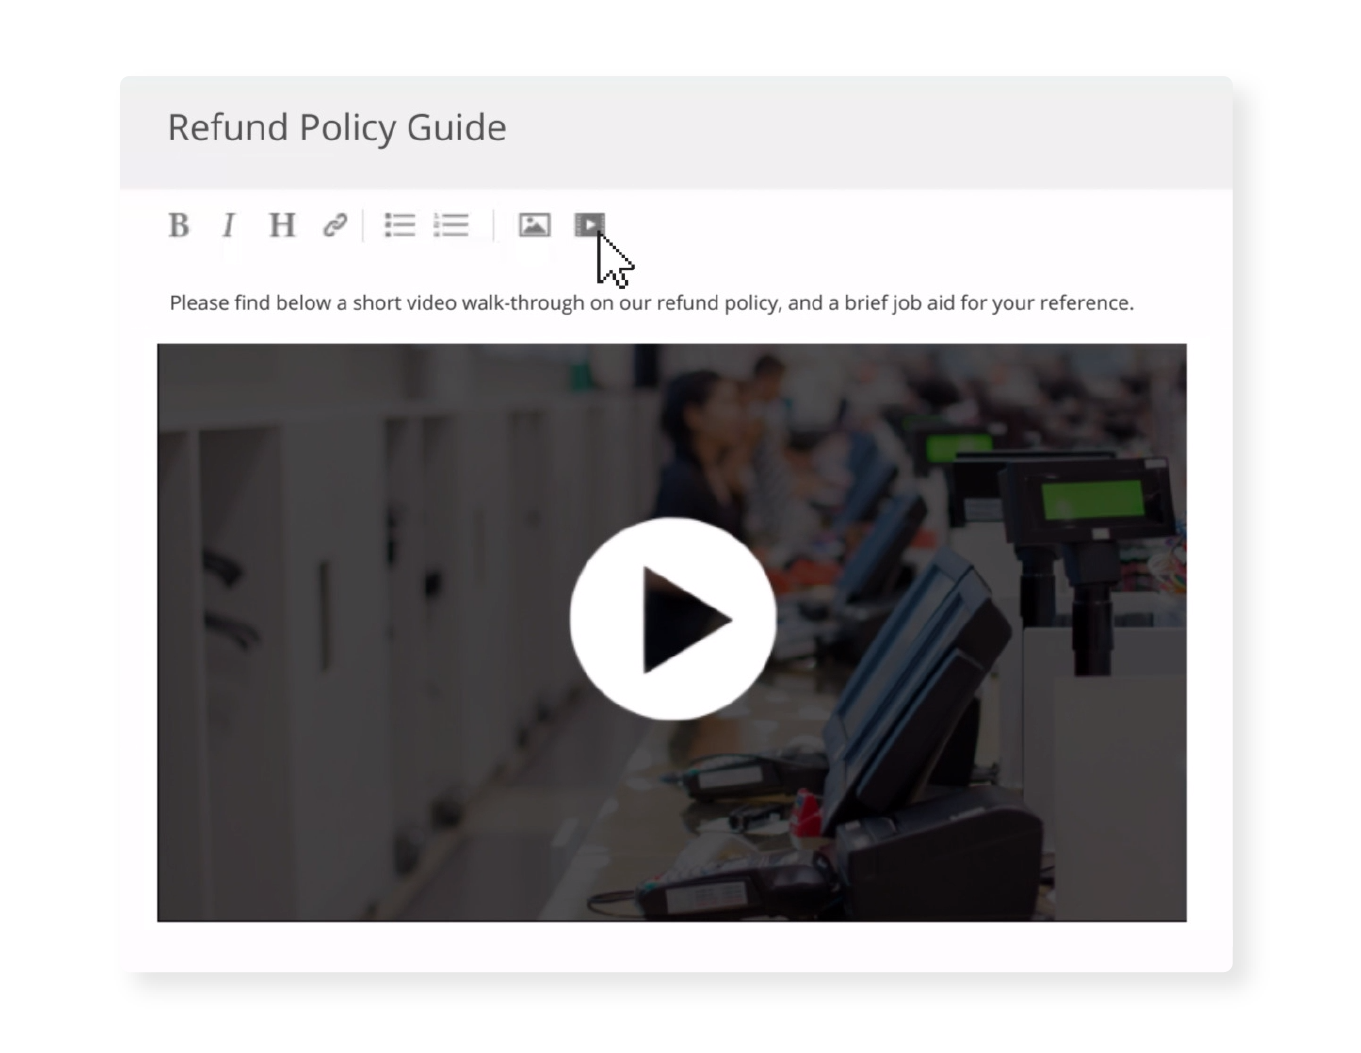 Platform Content Example: Refund Policy Guide